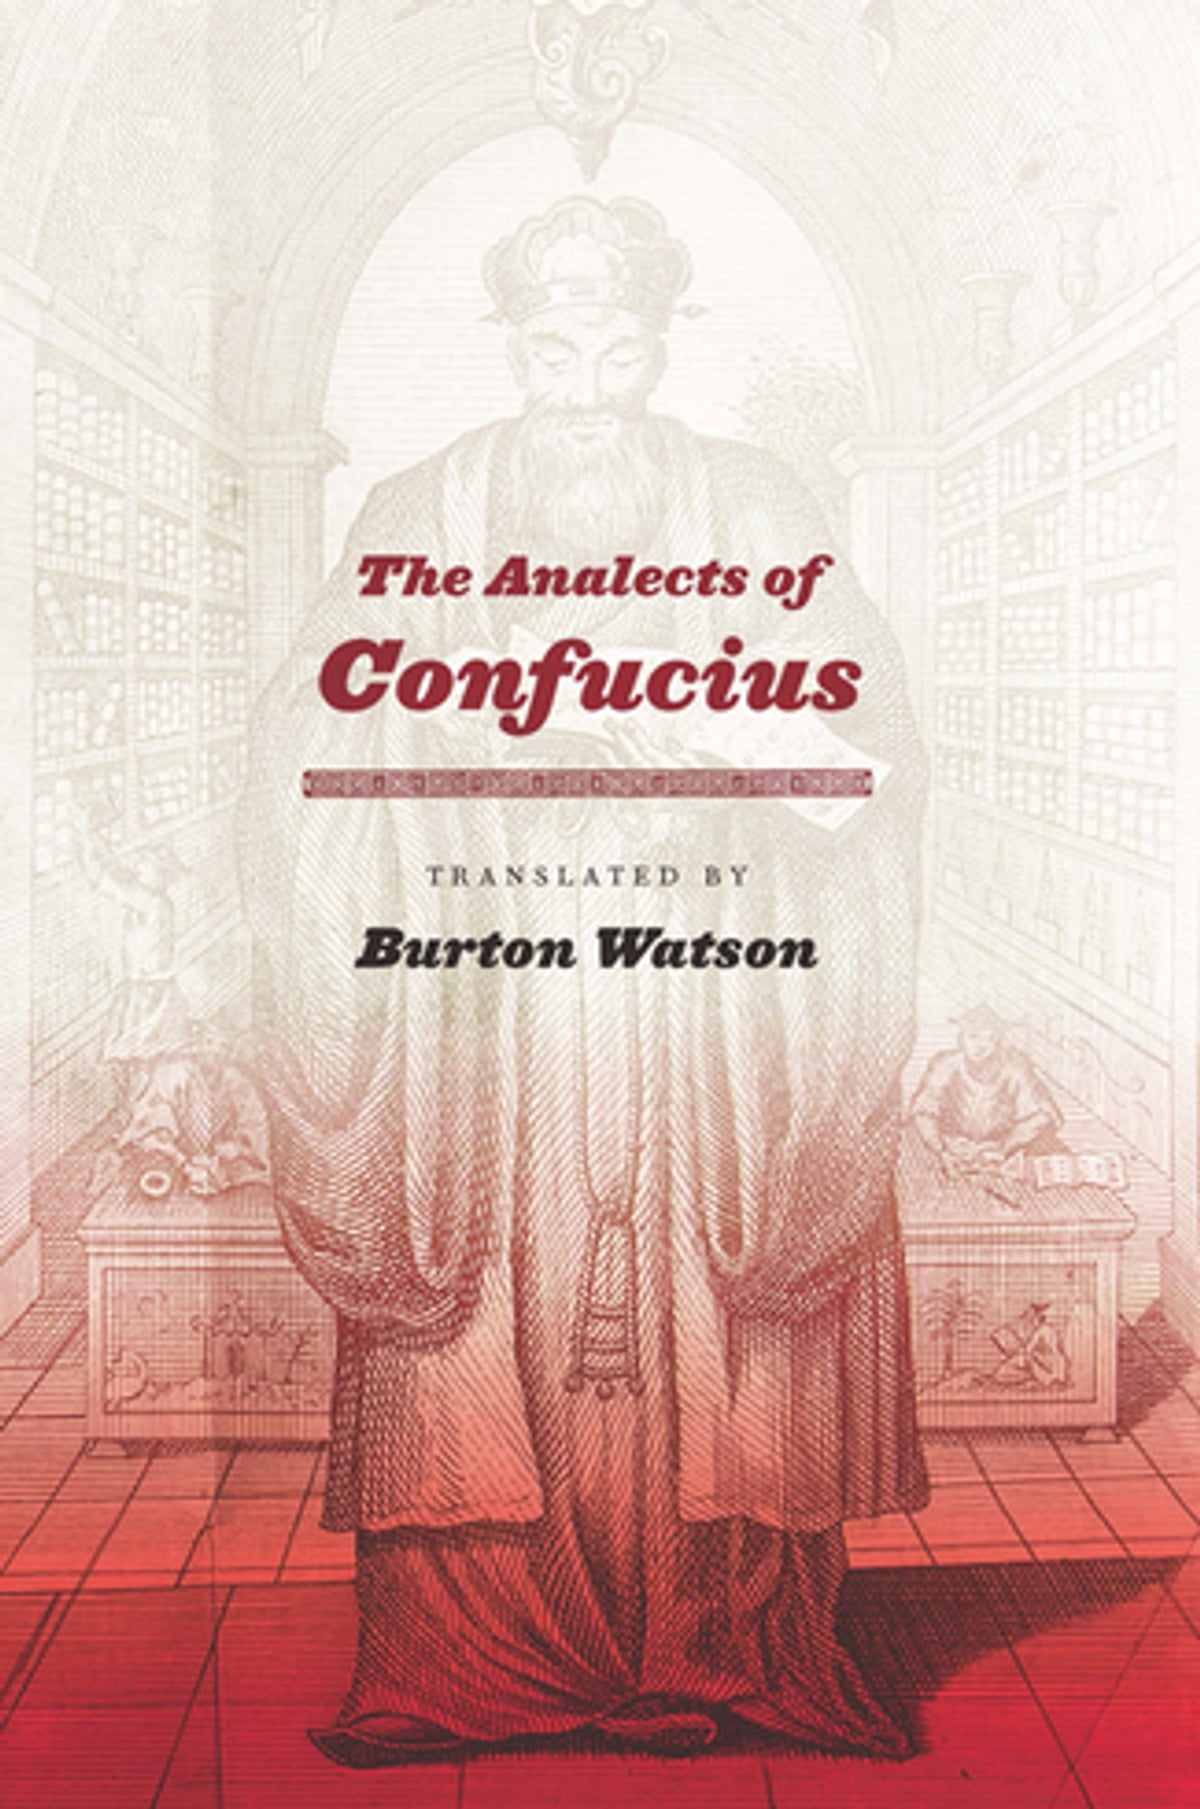 The Analects of Confucius eBook by Burton Watson - 9780231511995 | Rakuten  Kobo